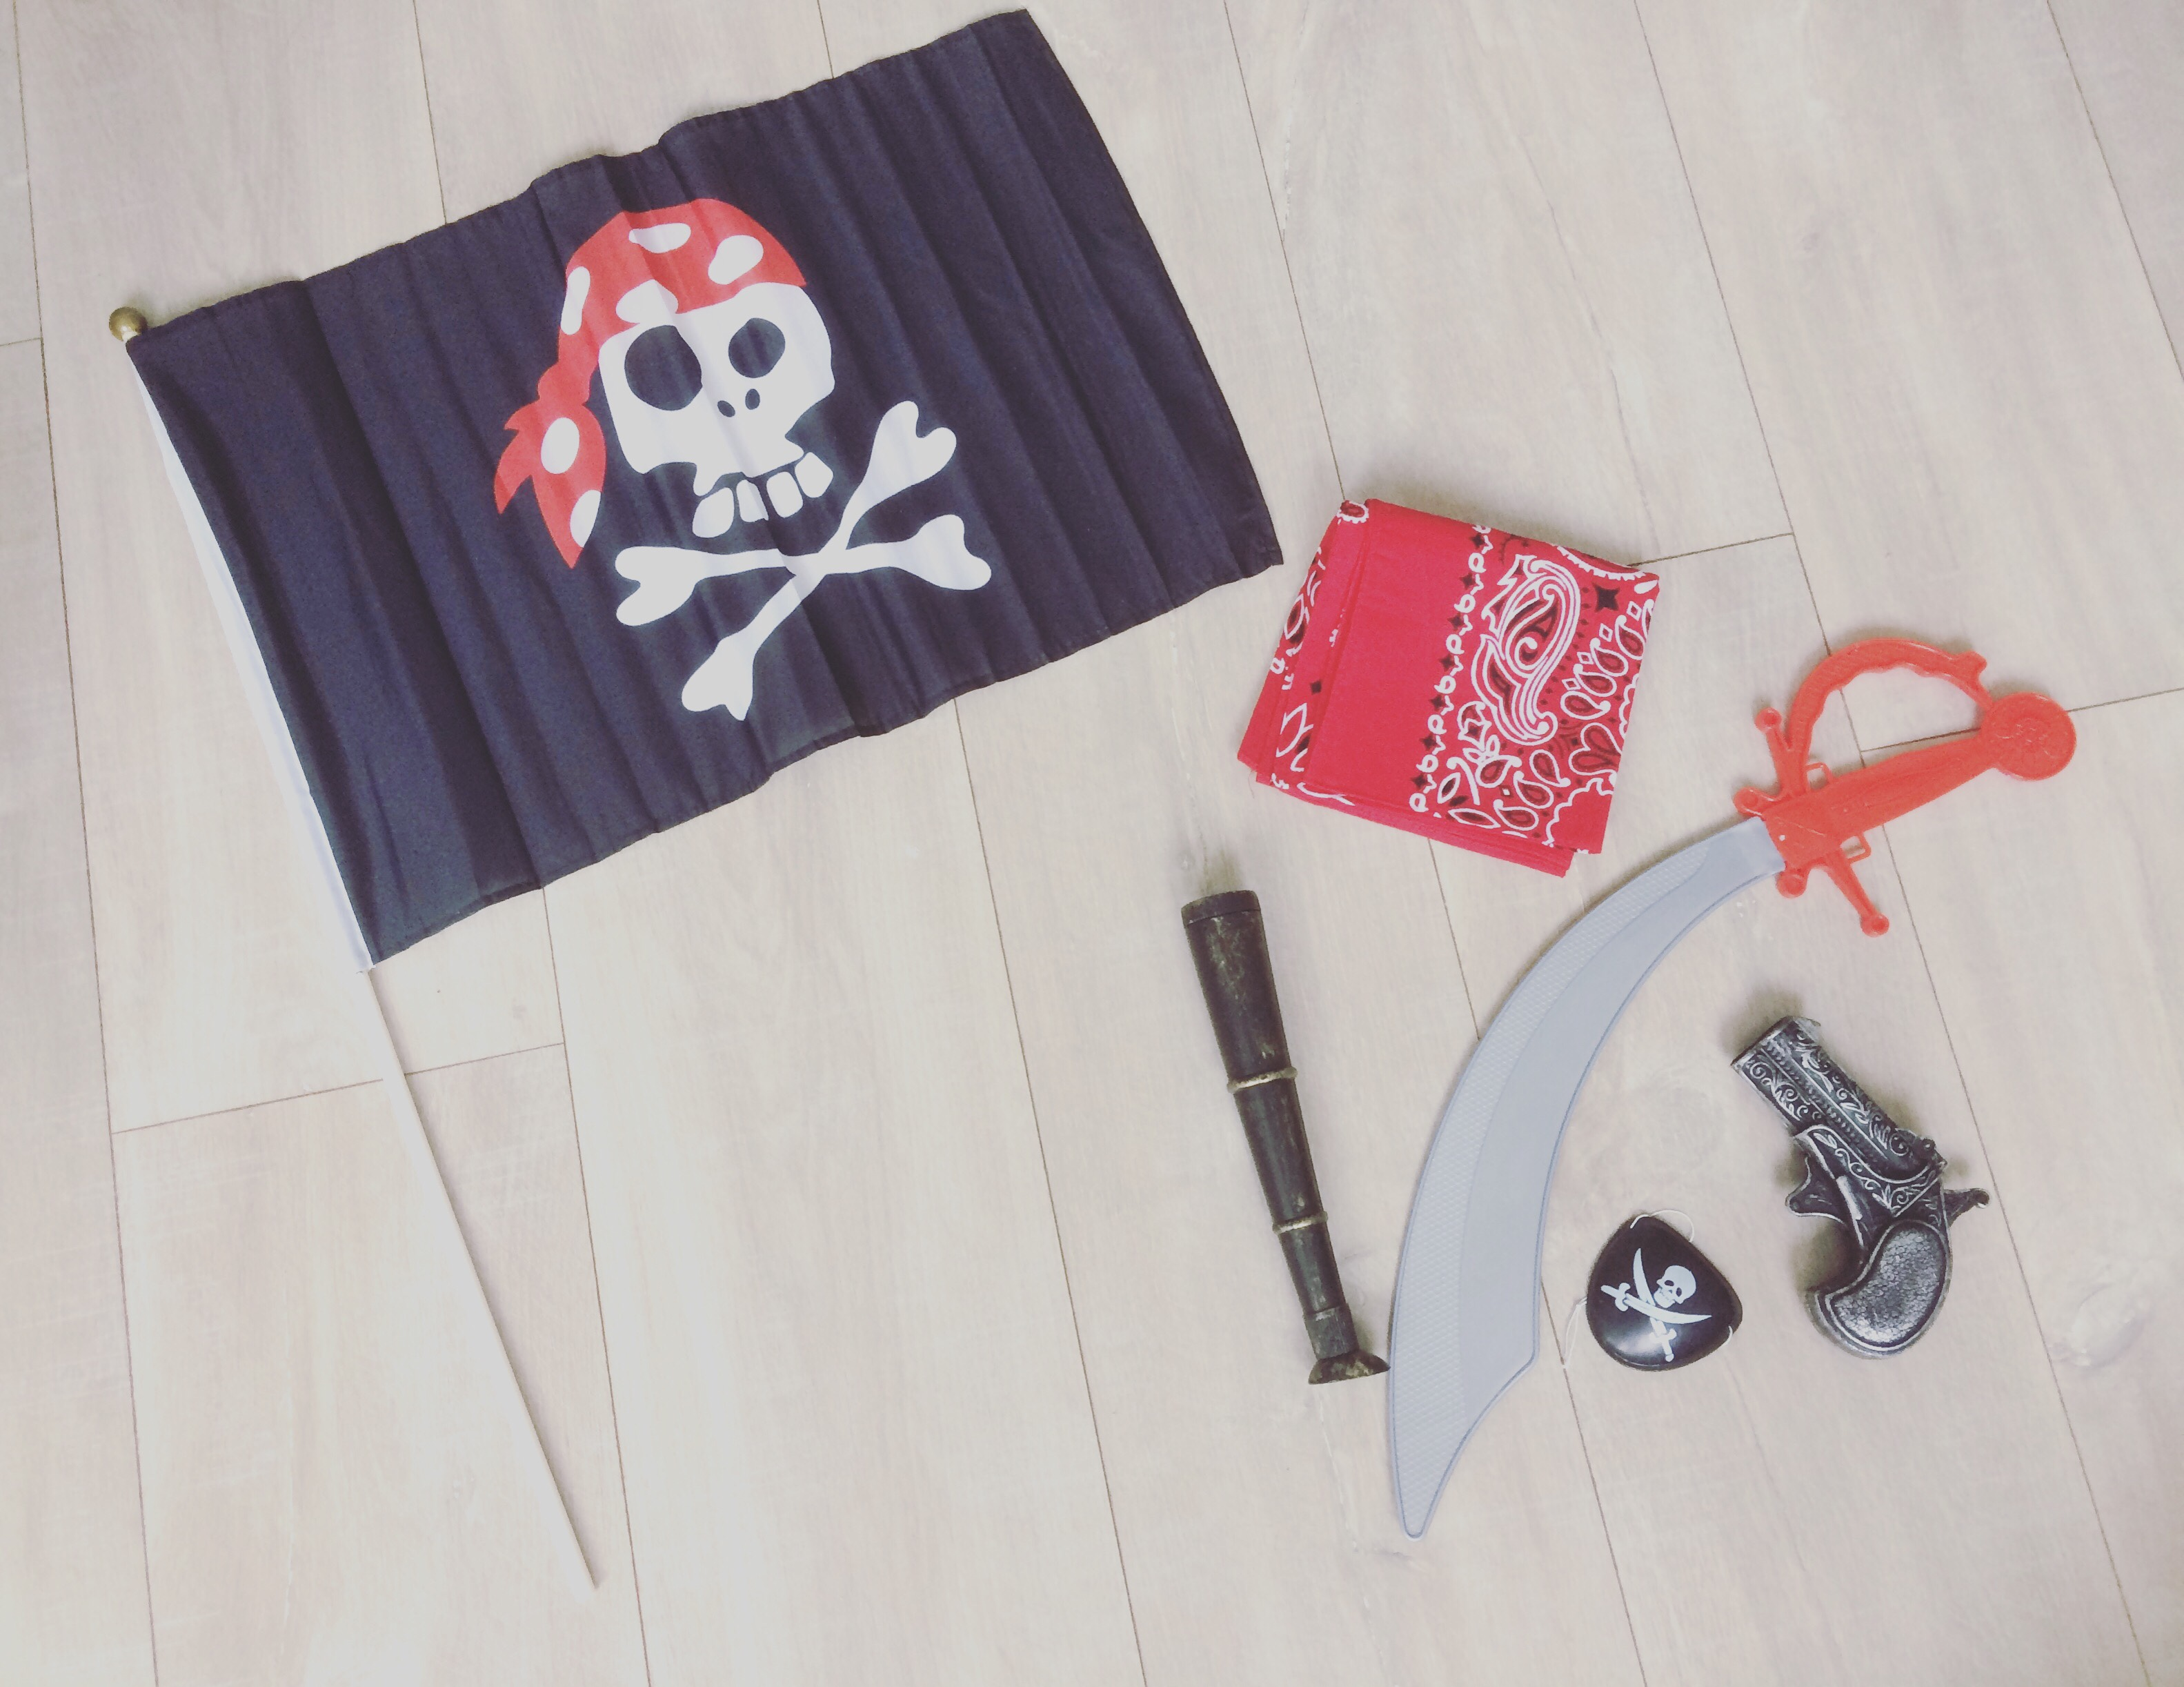 low budget partijtje piratenthema piraten thema kids verjaardag feest feestje spelen jongens kids mama mamablog mamablogger blog blogger lifestyle diy laviedemama.nl